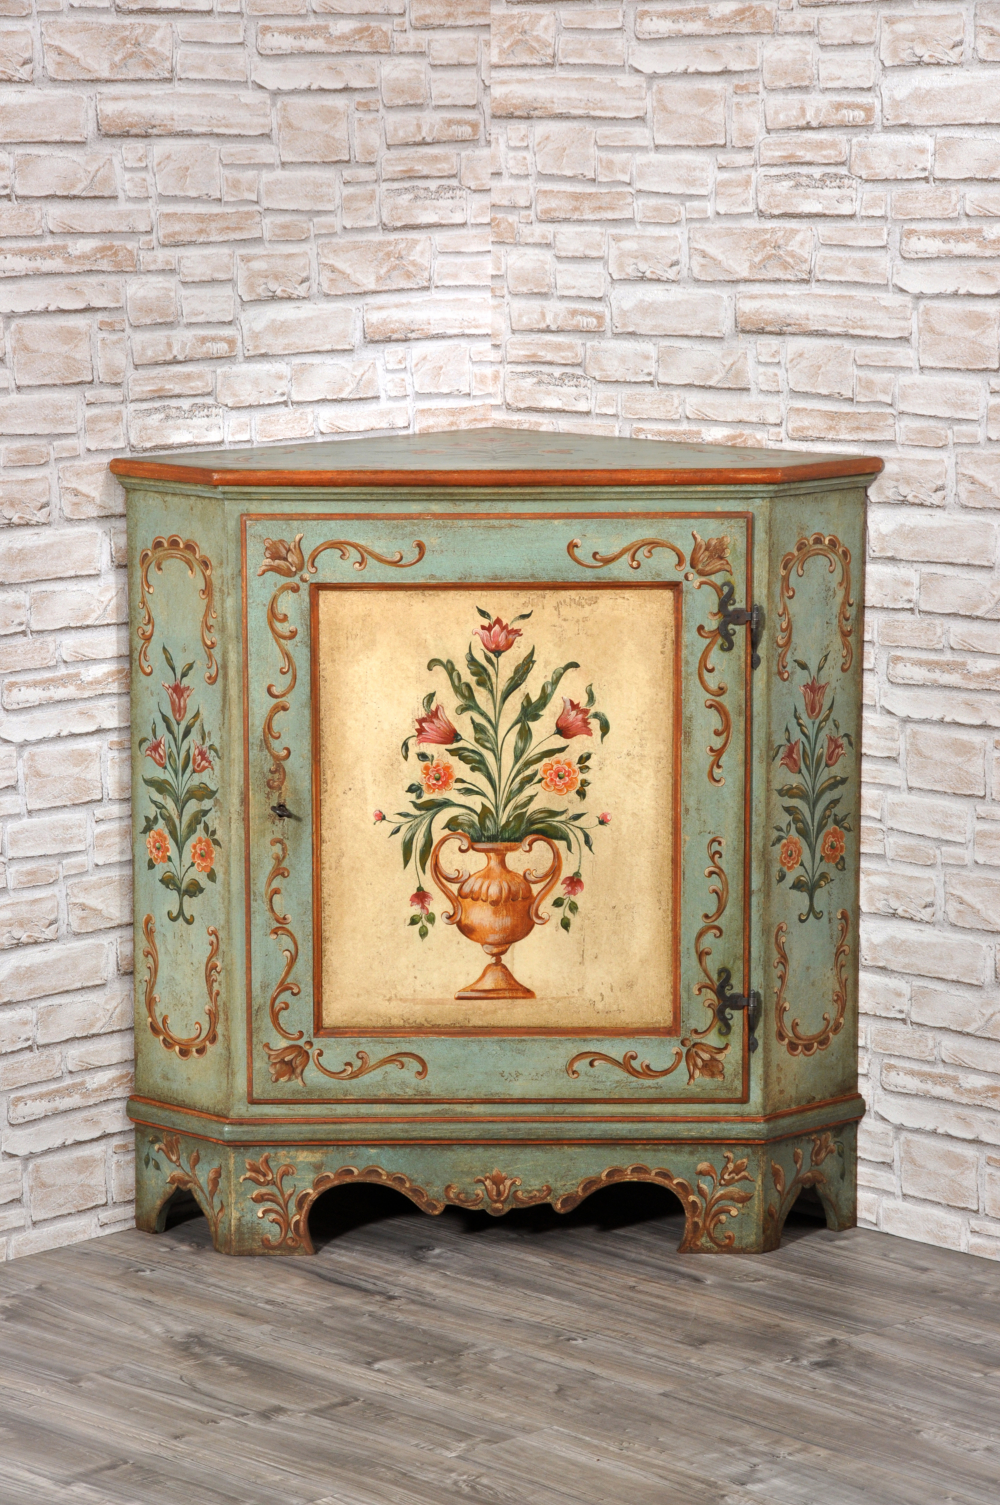 Handpainted Luxury Tyrolean Corner Unit, Decorated with Baroque Patterns